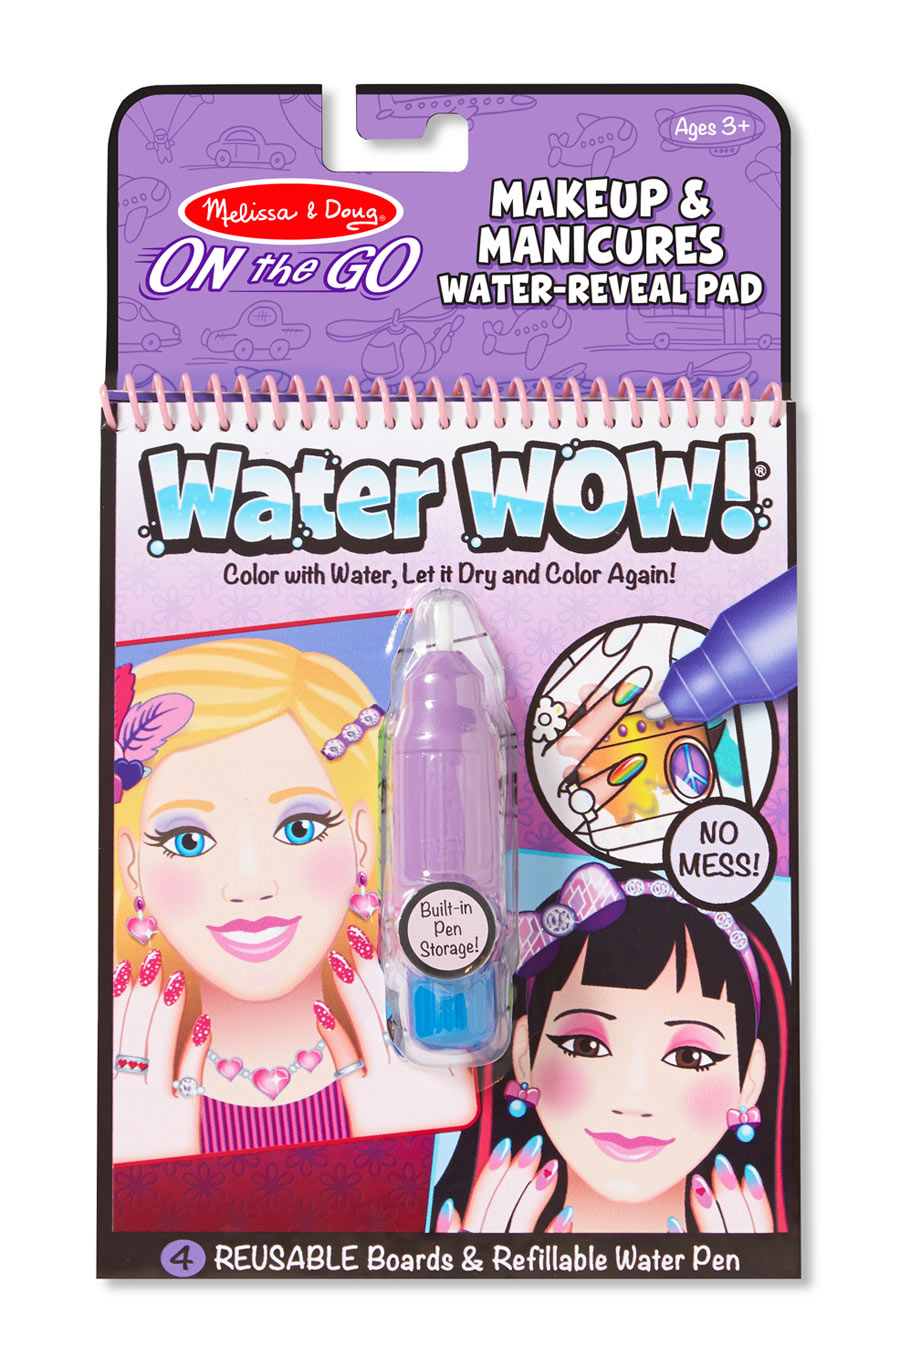 Makeup & Manicures (Water Wow!)